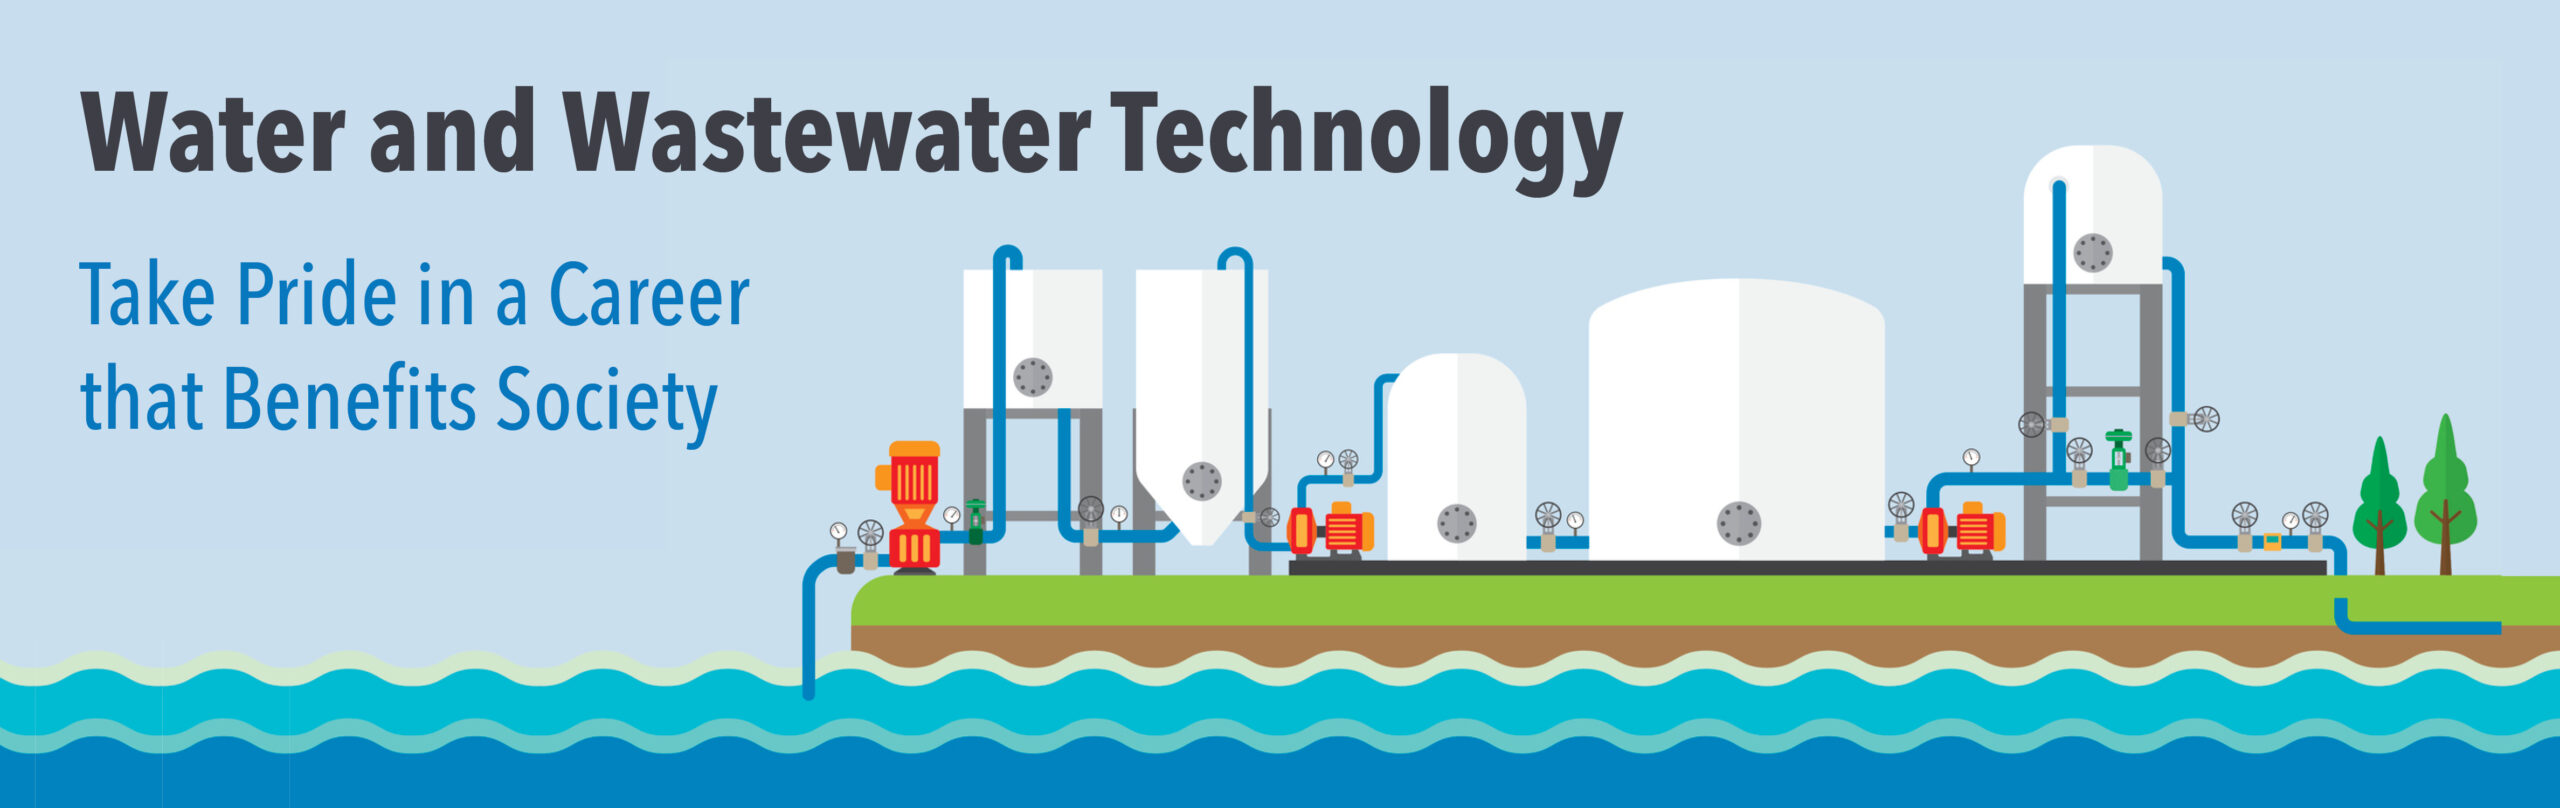 water waste technology training